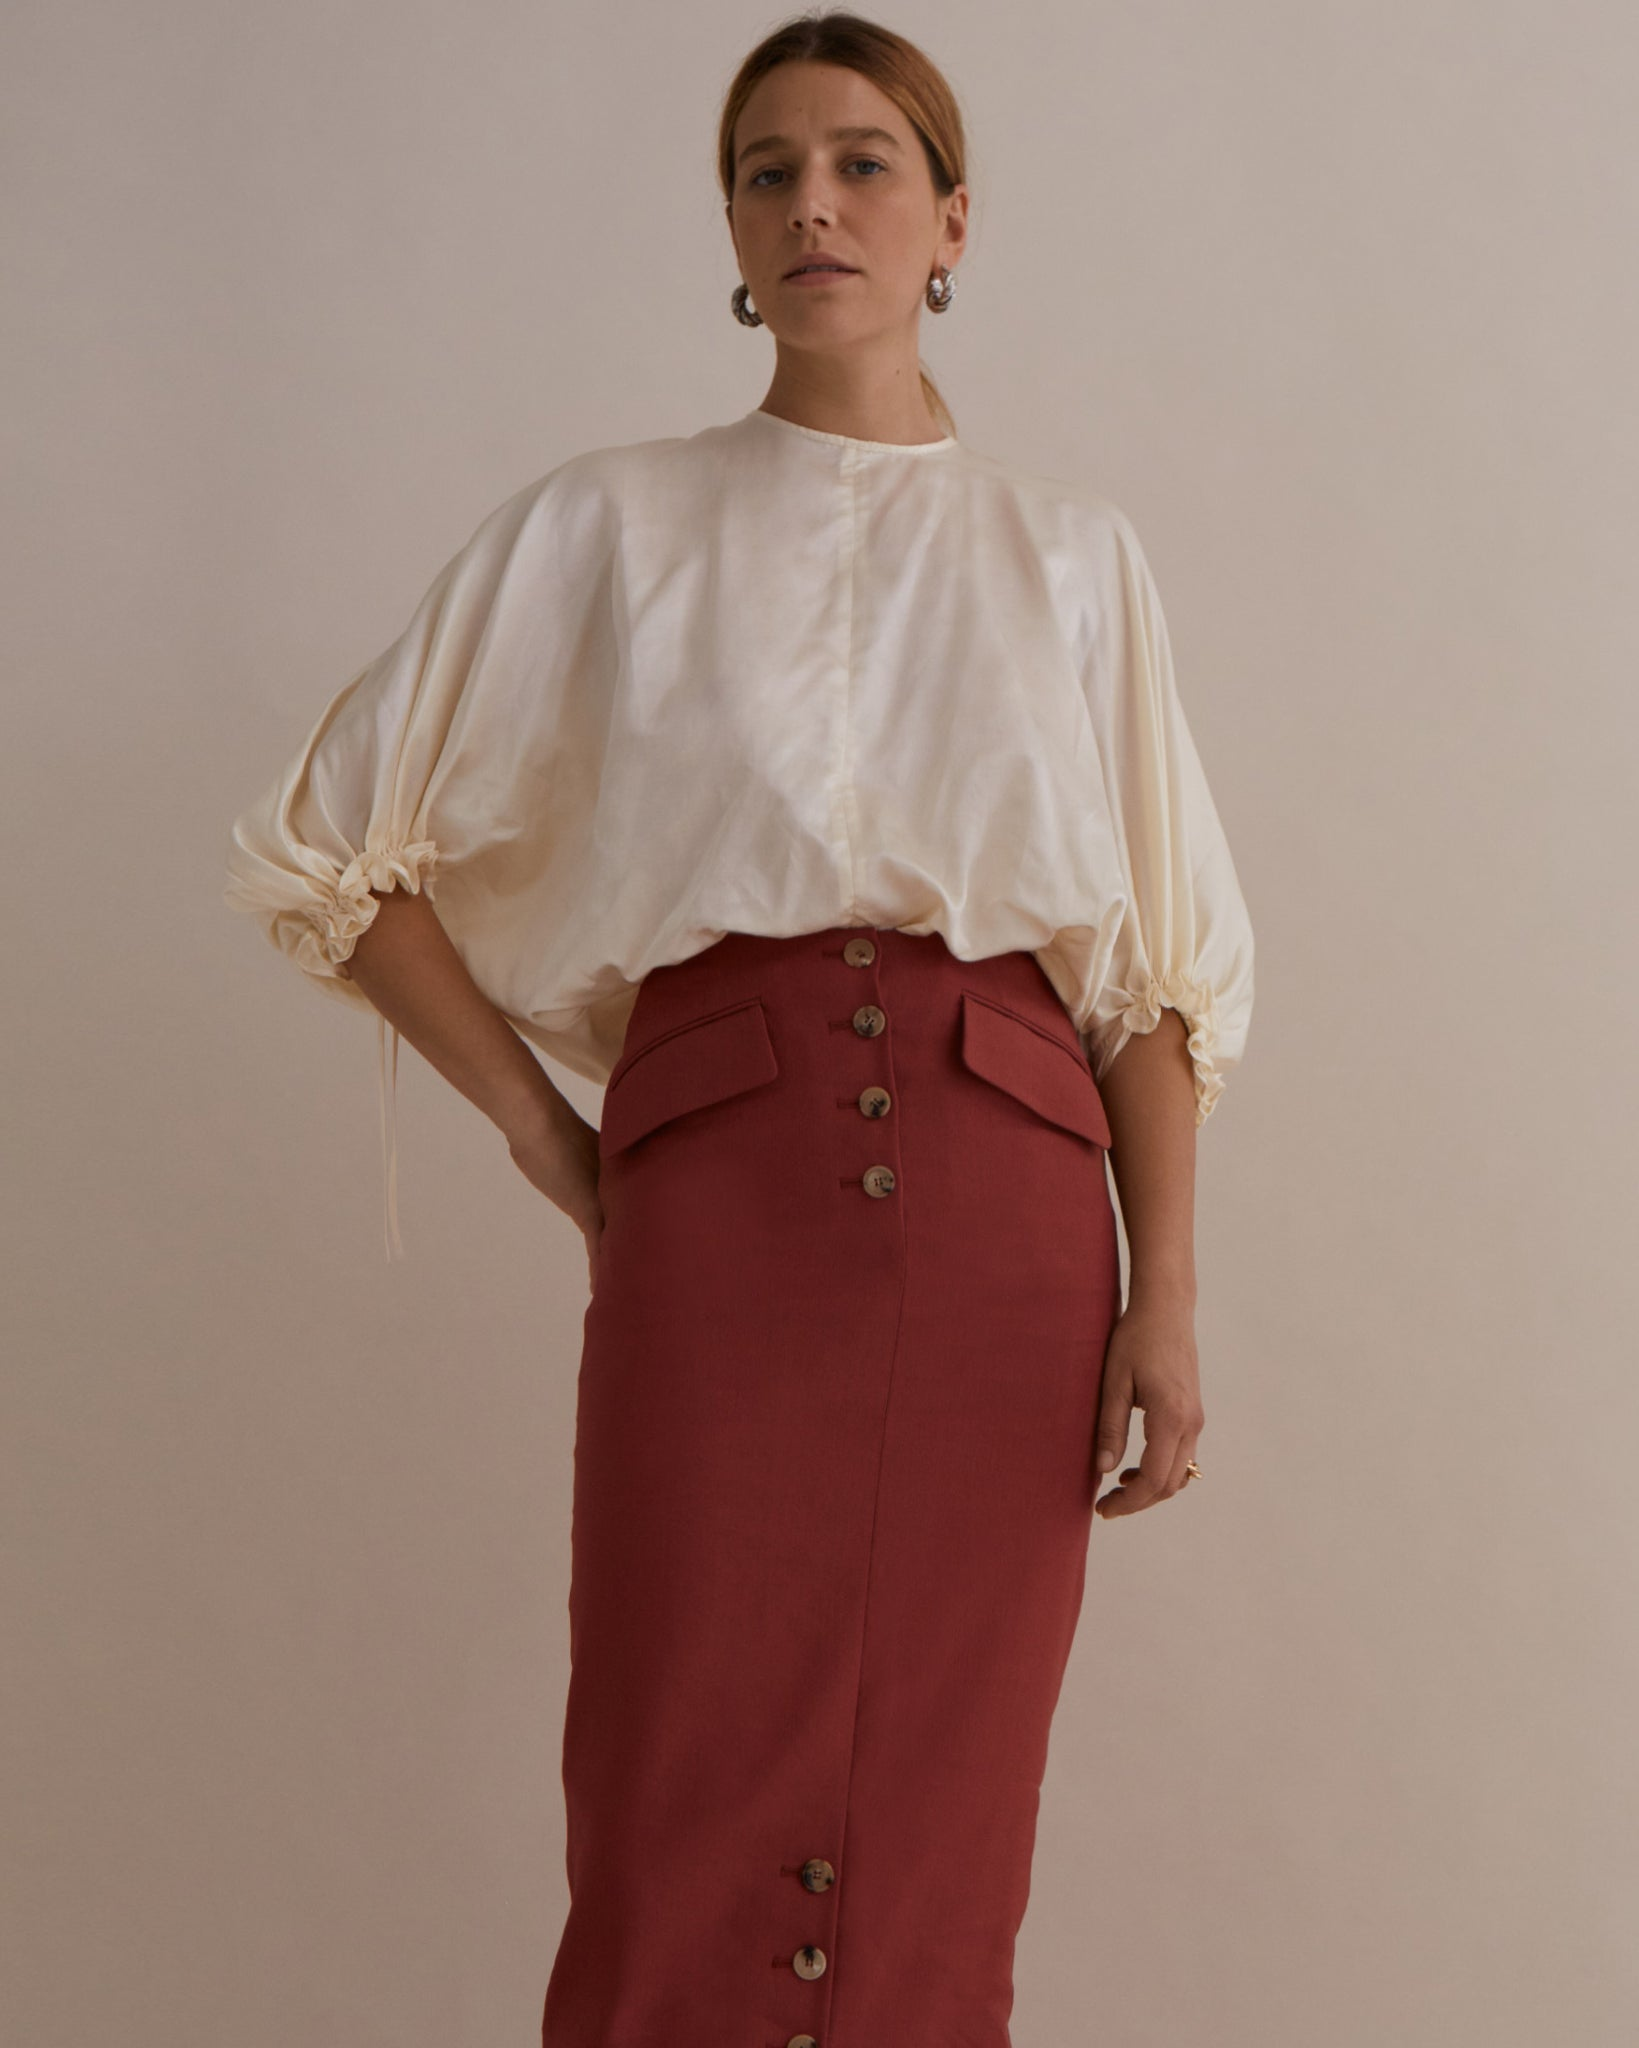 Rowan Blouse Silk Satin Ivory - SPECIAL PRICE